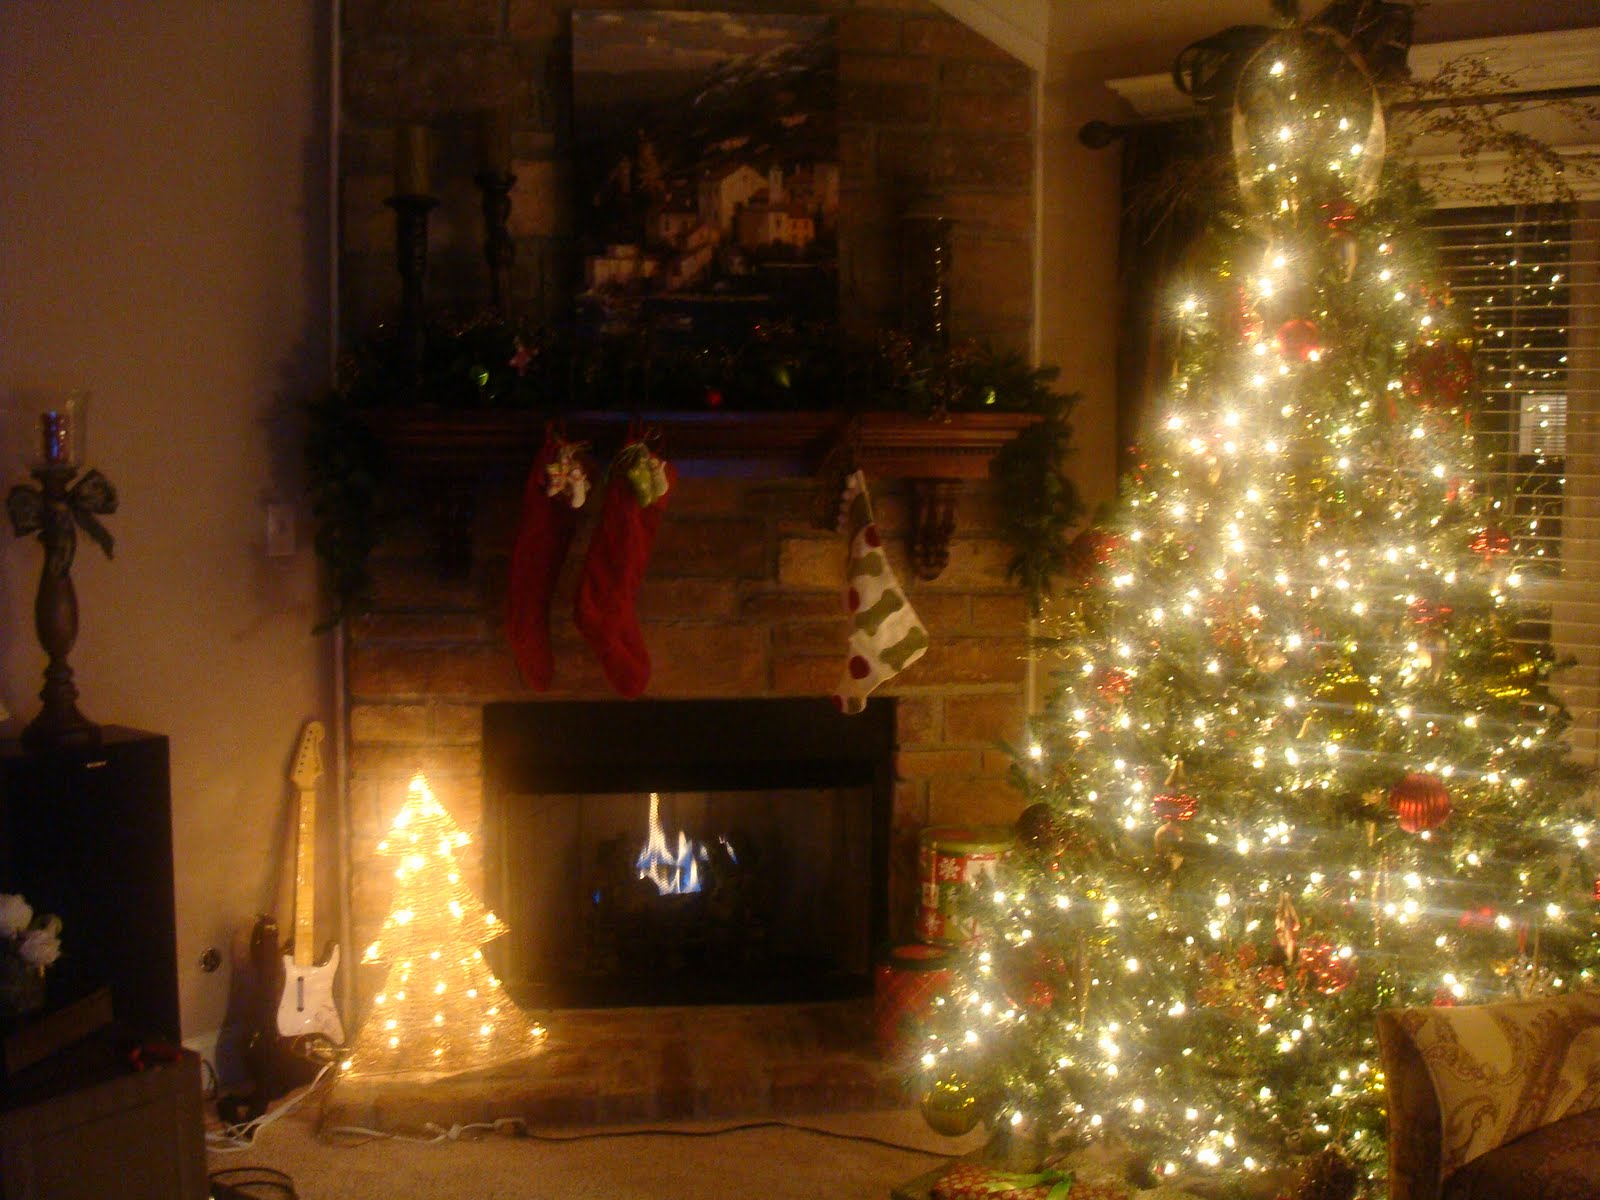 Christmas Tree Fireplace Scene Viewing Gallery